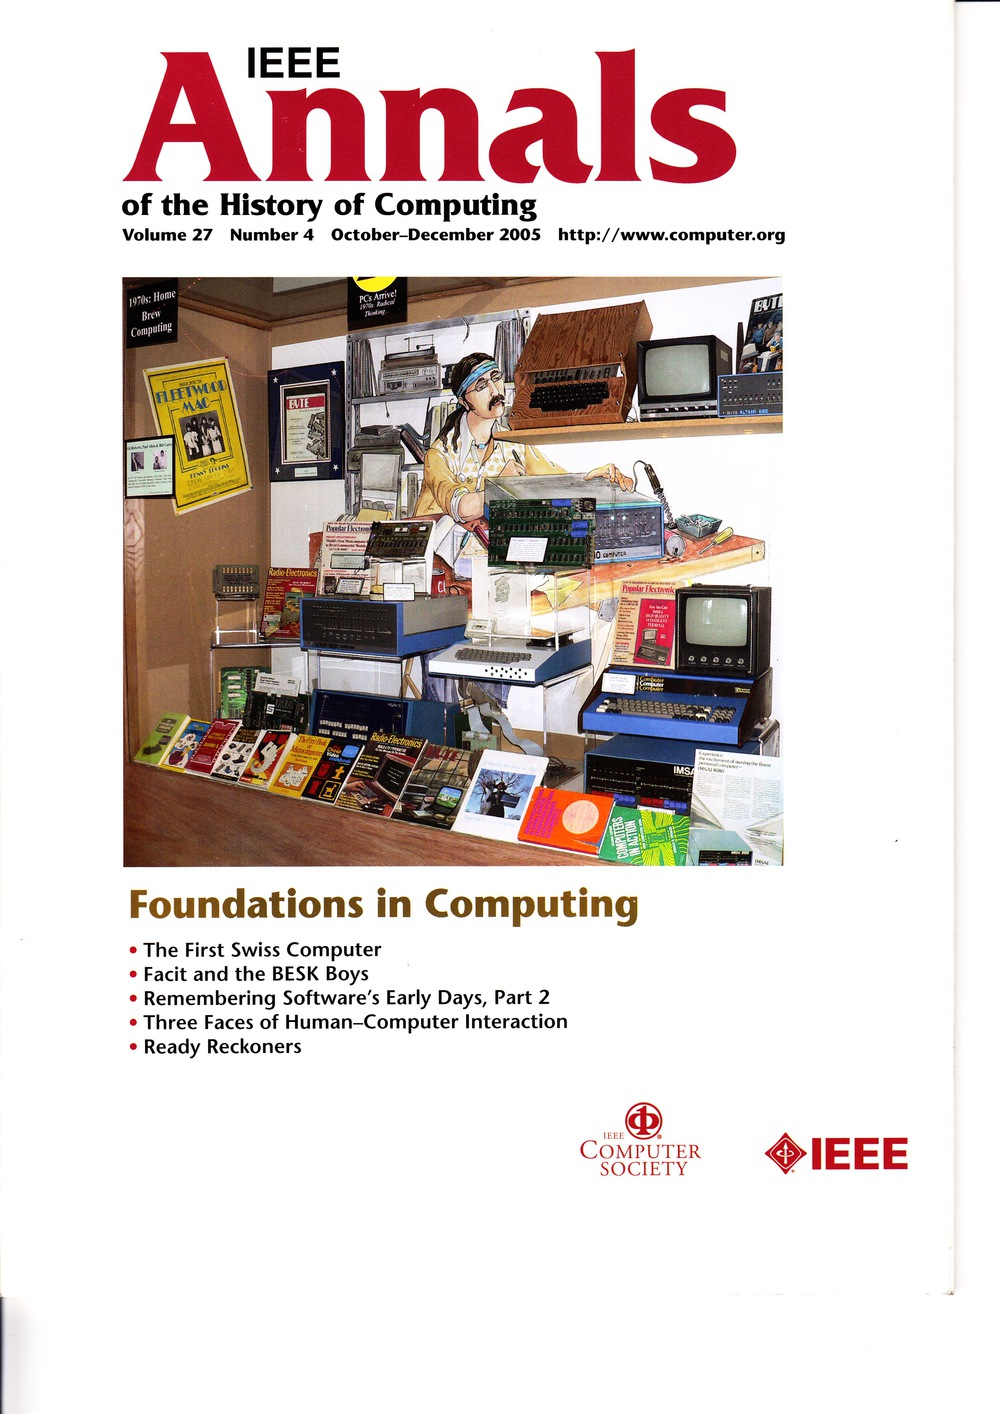 Scan of Document: IEEE Annals of the History of Computing - October-December 2005